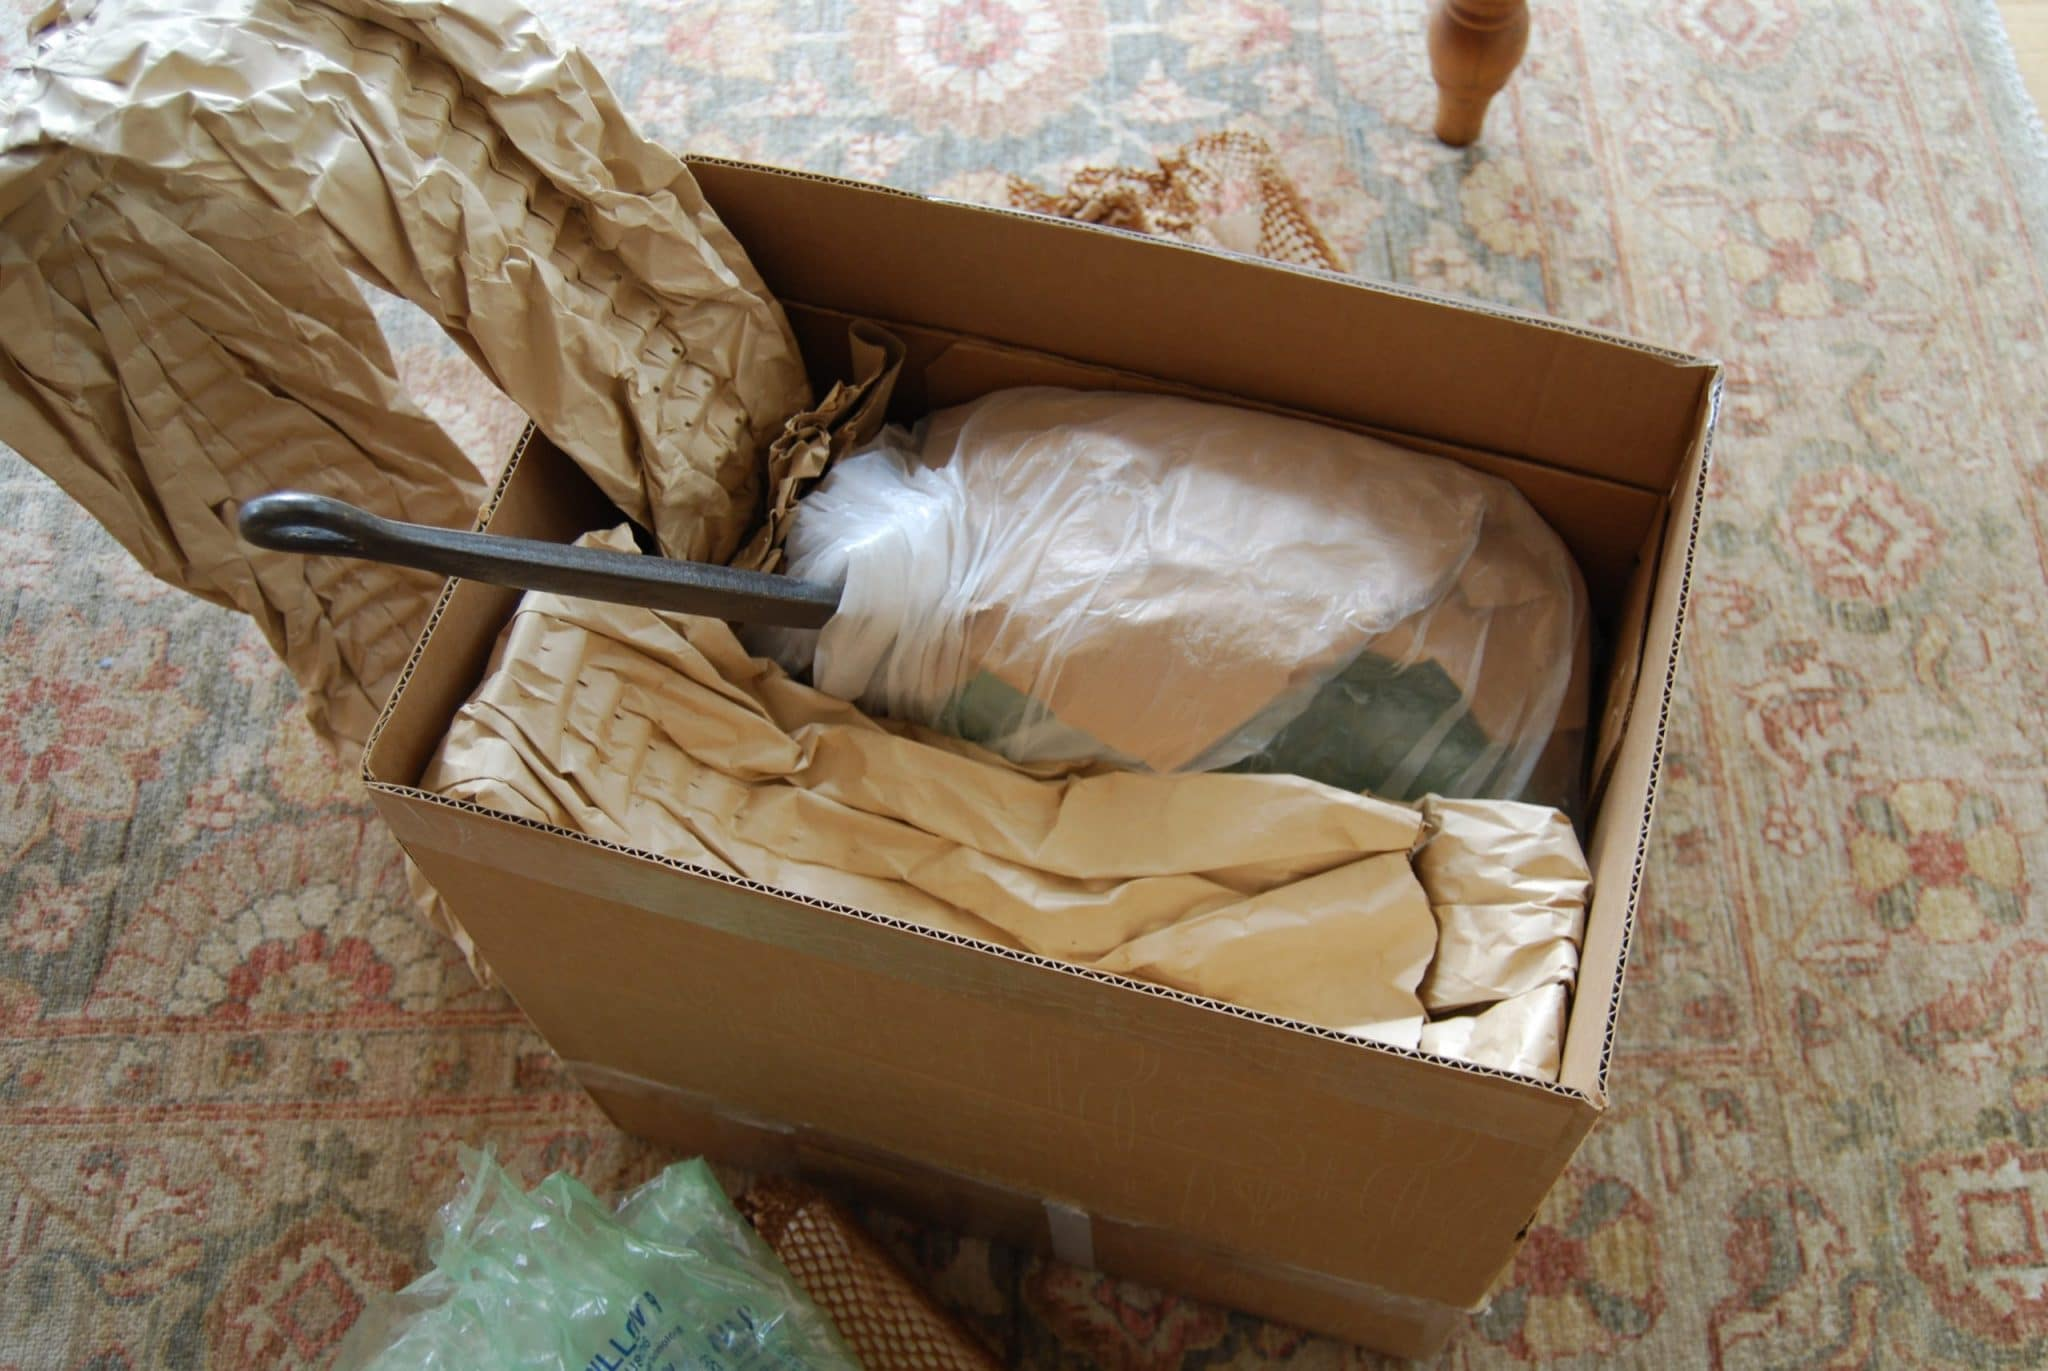 Unpacking a well-packed pan